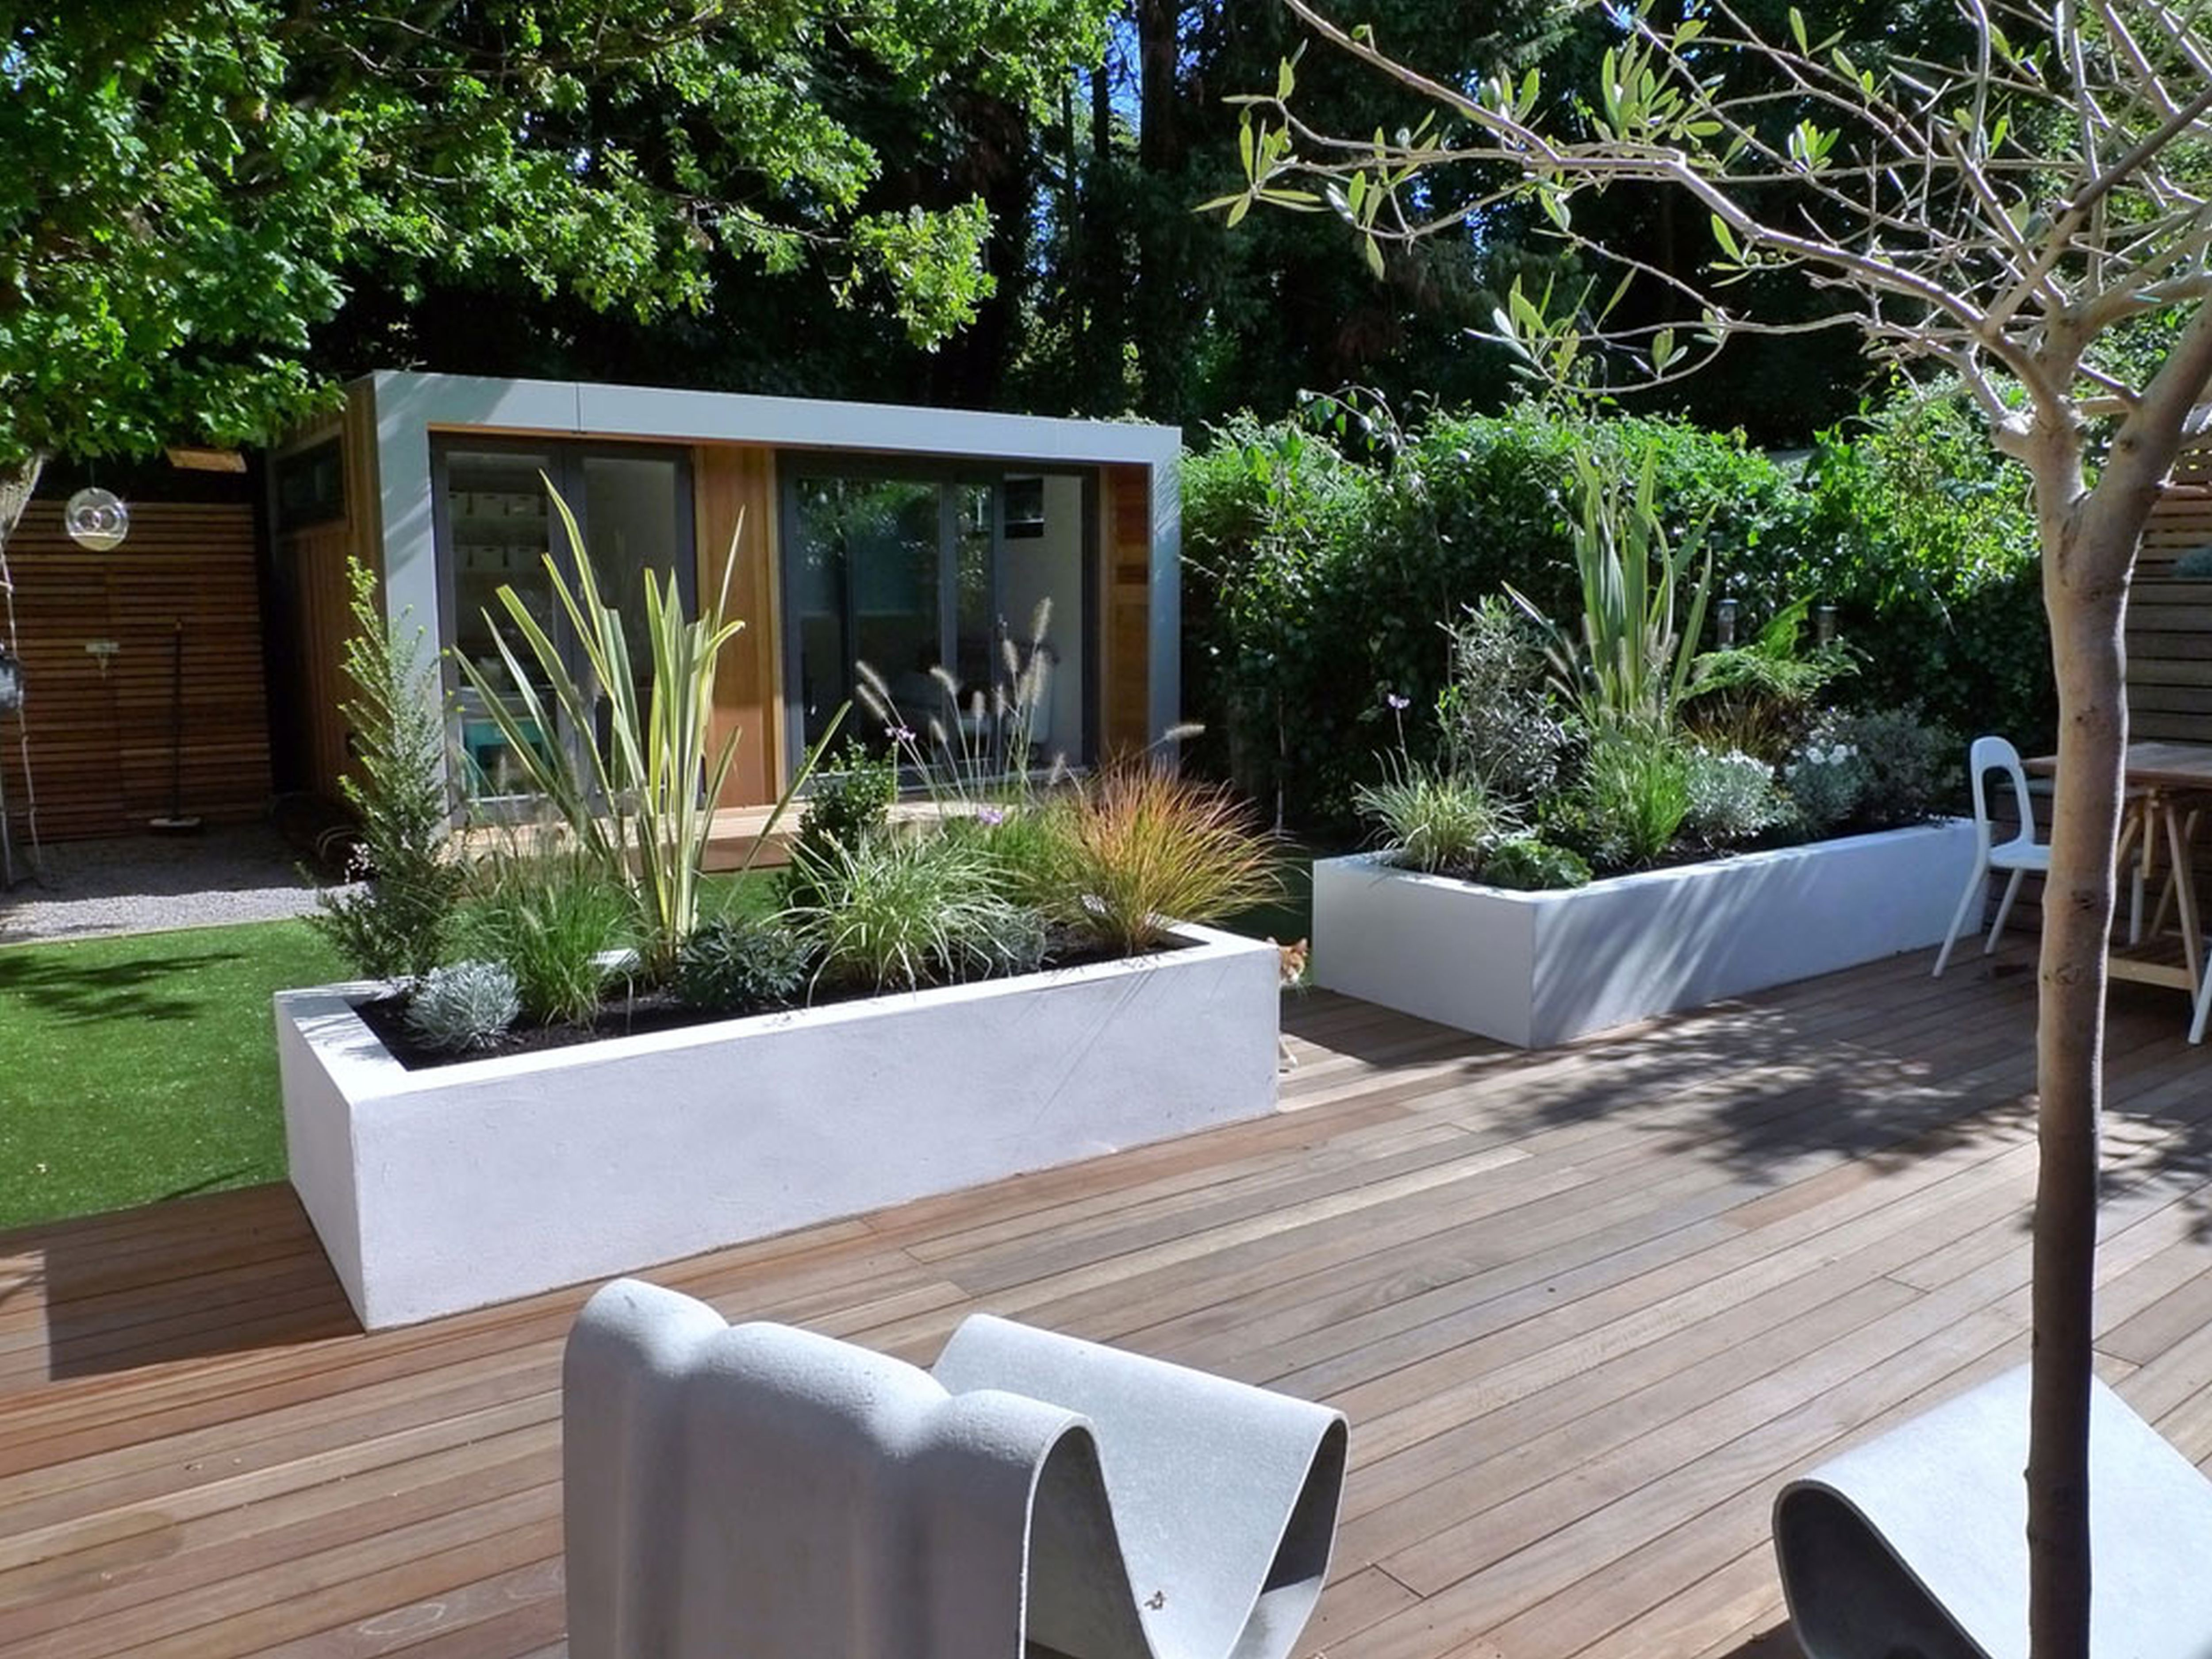 Cute Home Garden Ideas Creativity Interesting Design Garden Sweet Fittings  Representation, Small Contemporary Modern London Garden Design Beauteous  Garden ...